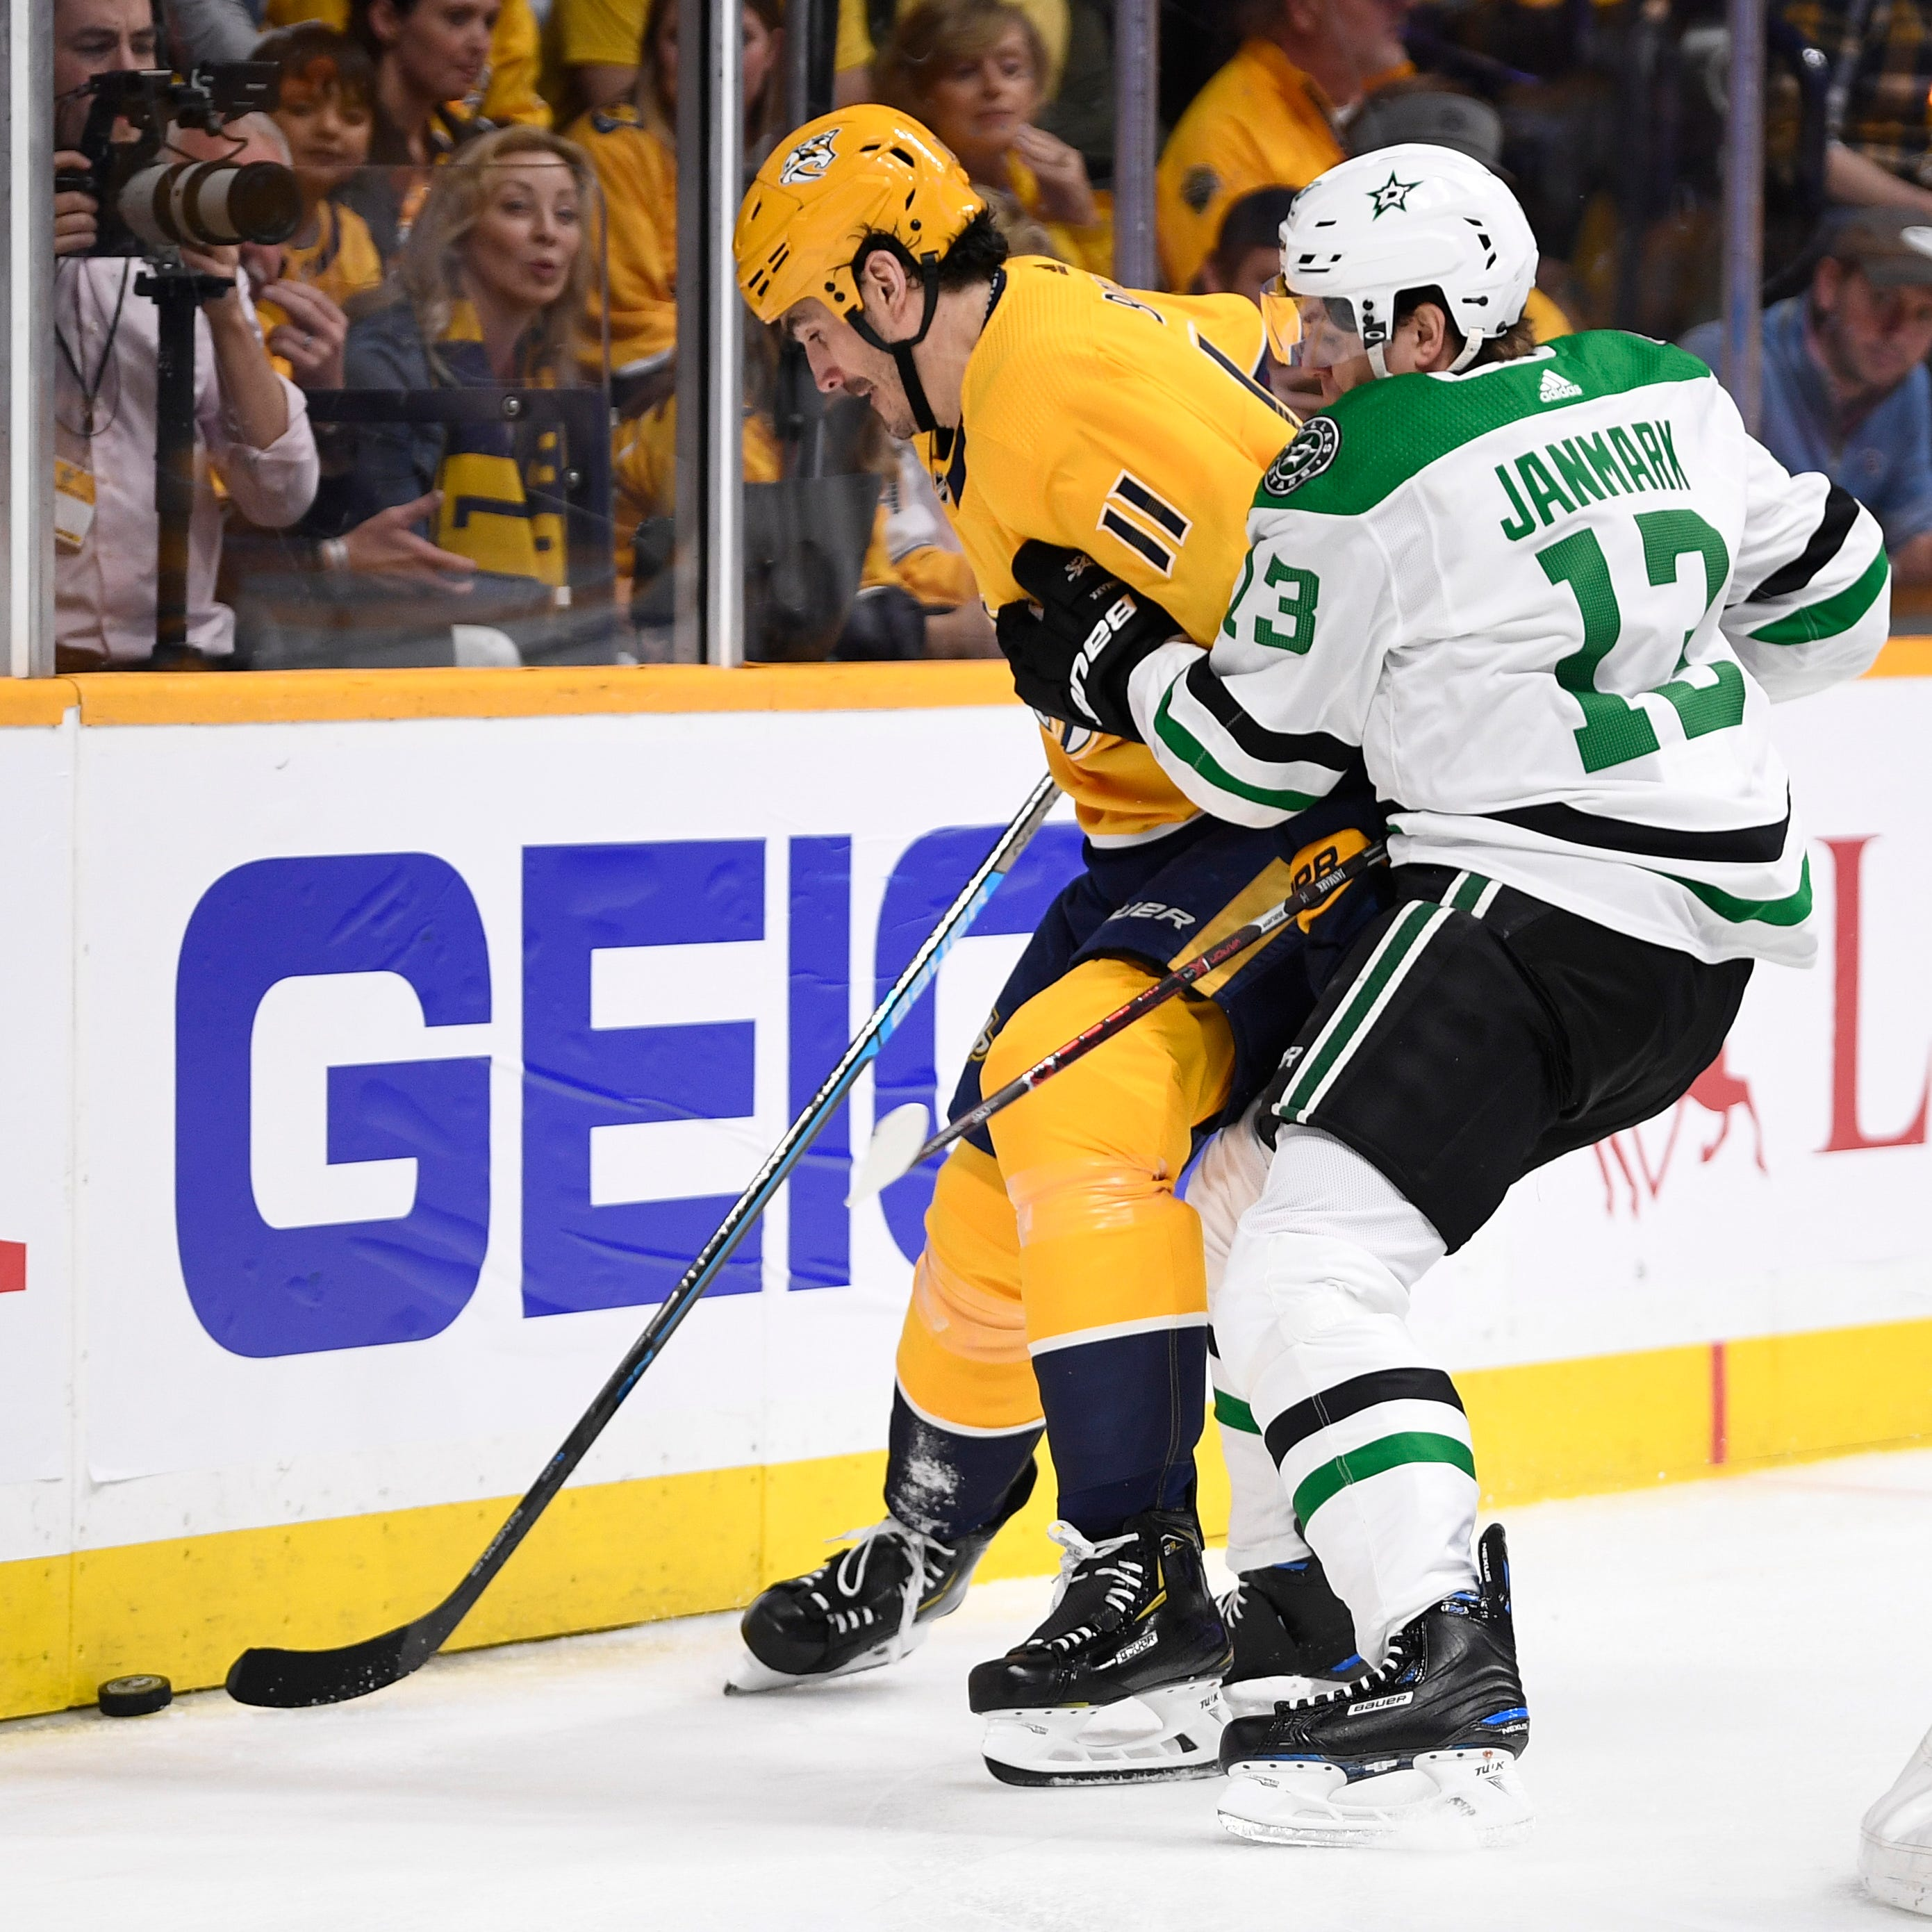 Stars 3, Predators 2: Three things we learned from Game 1